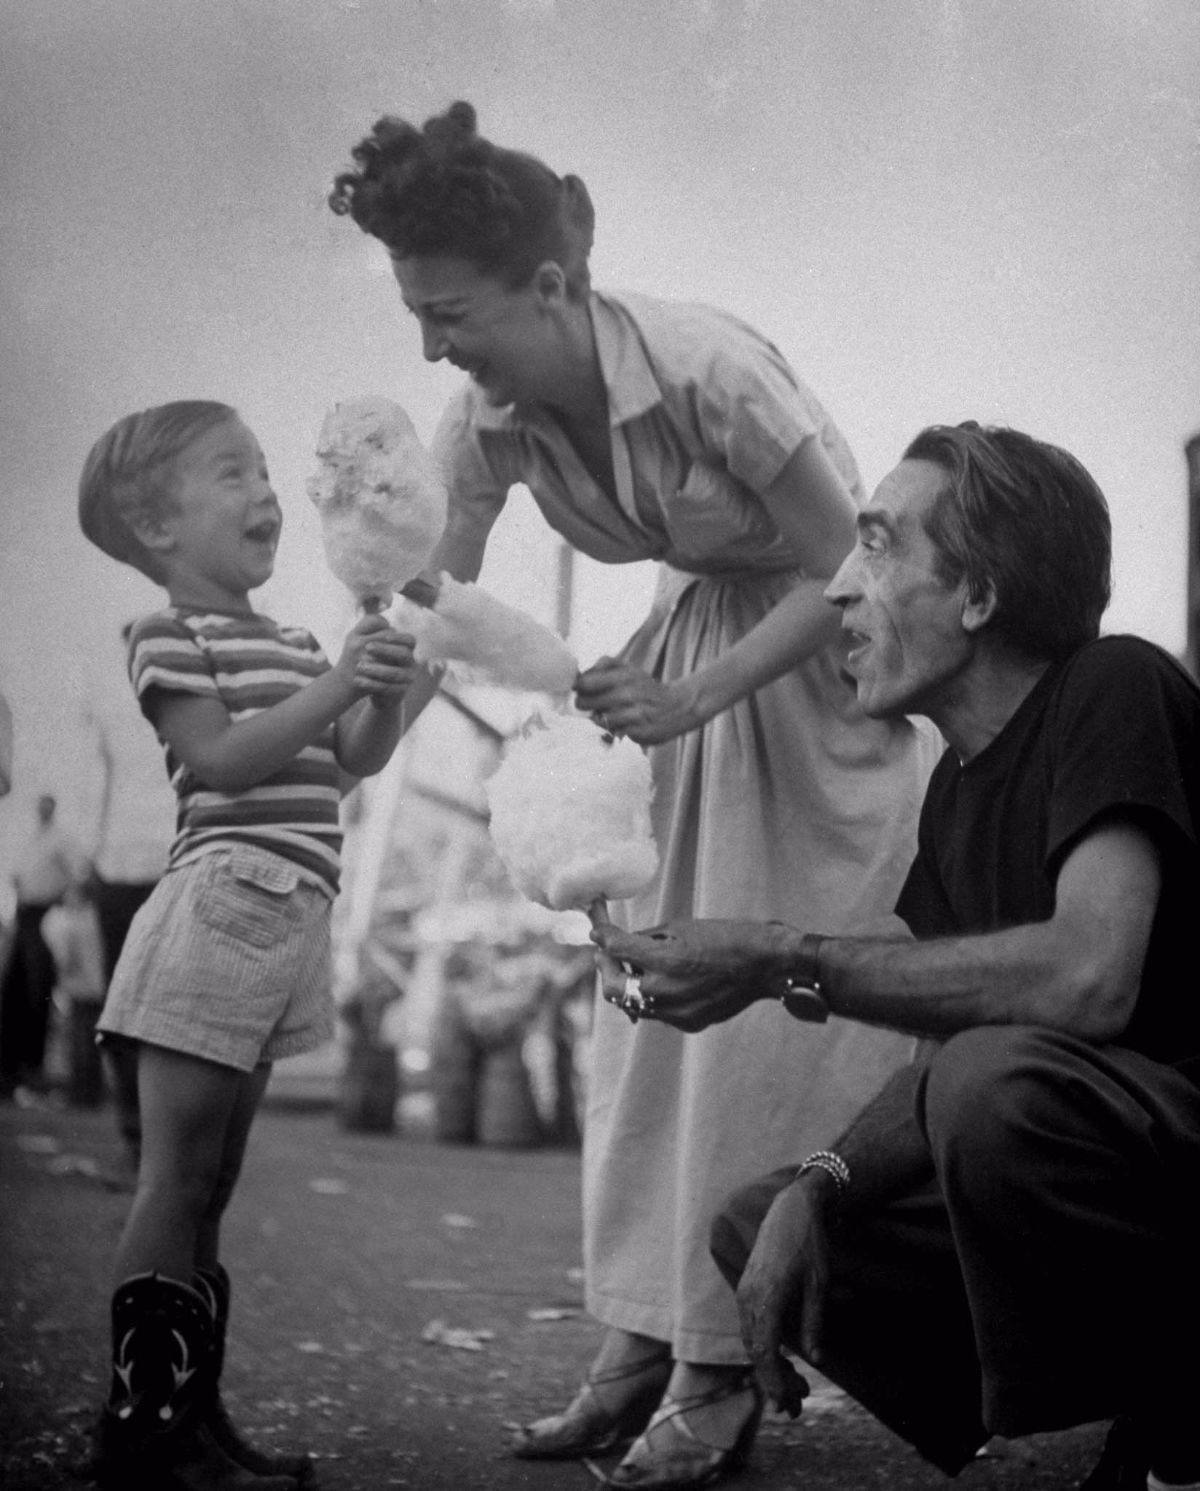 Gypsy Rose Lee gives her son, Erik, cotton candy while her husband Julio De  Diego watches, 1949.